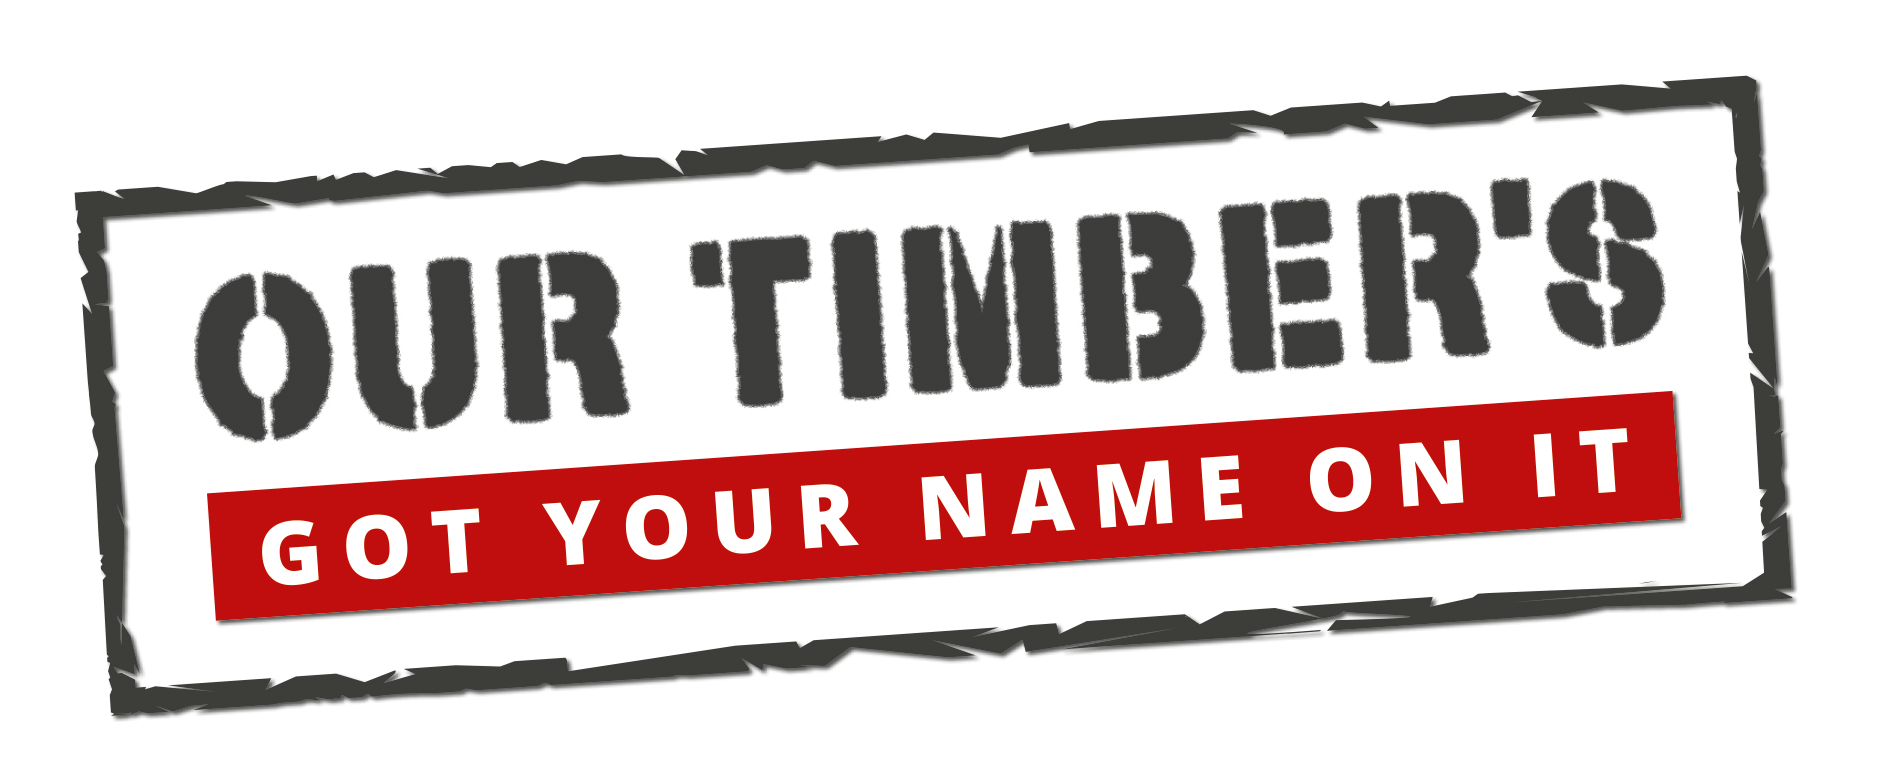 Out timber's got your name on it - LOGO